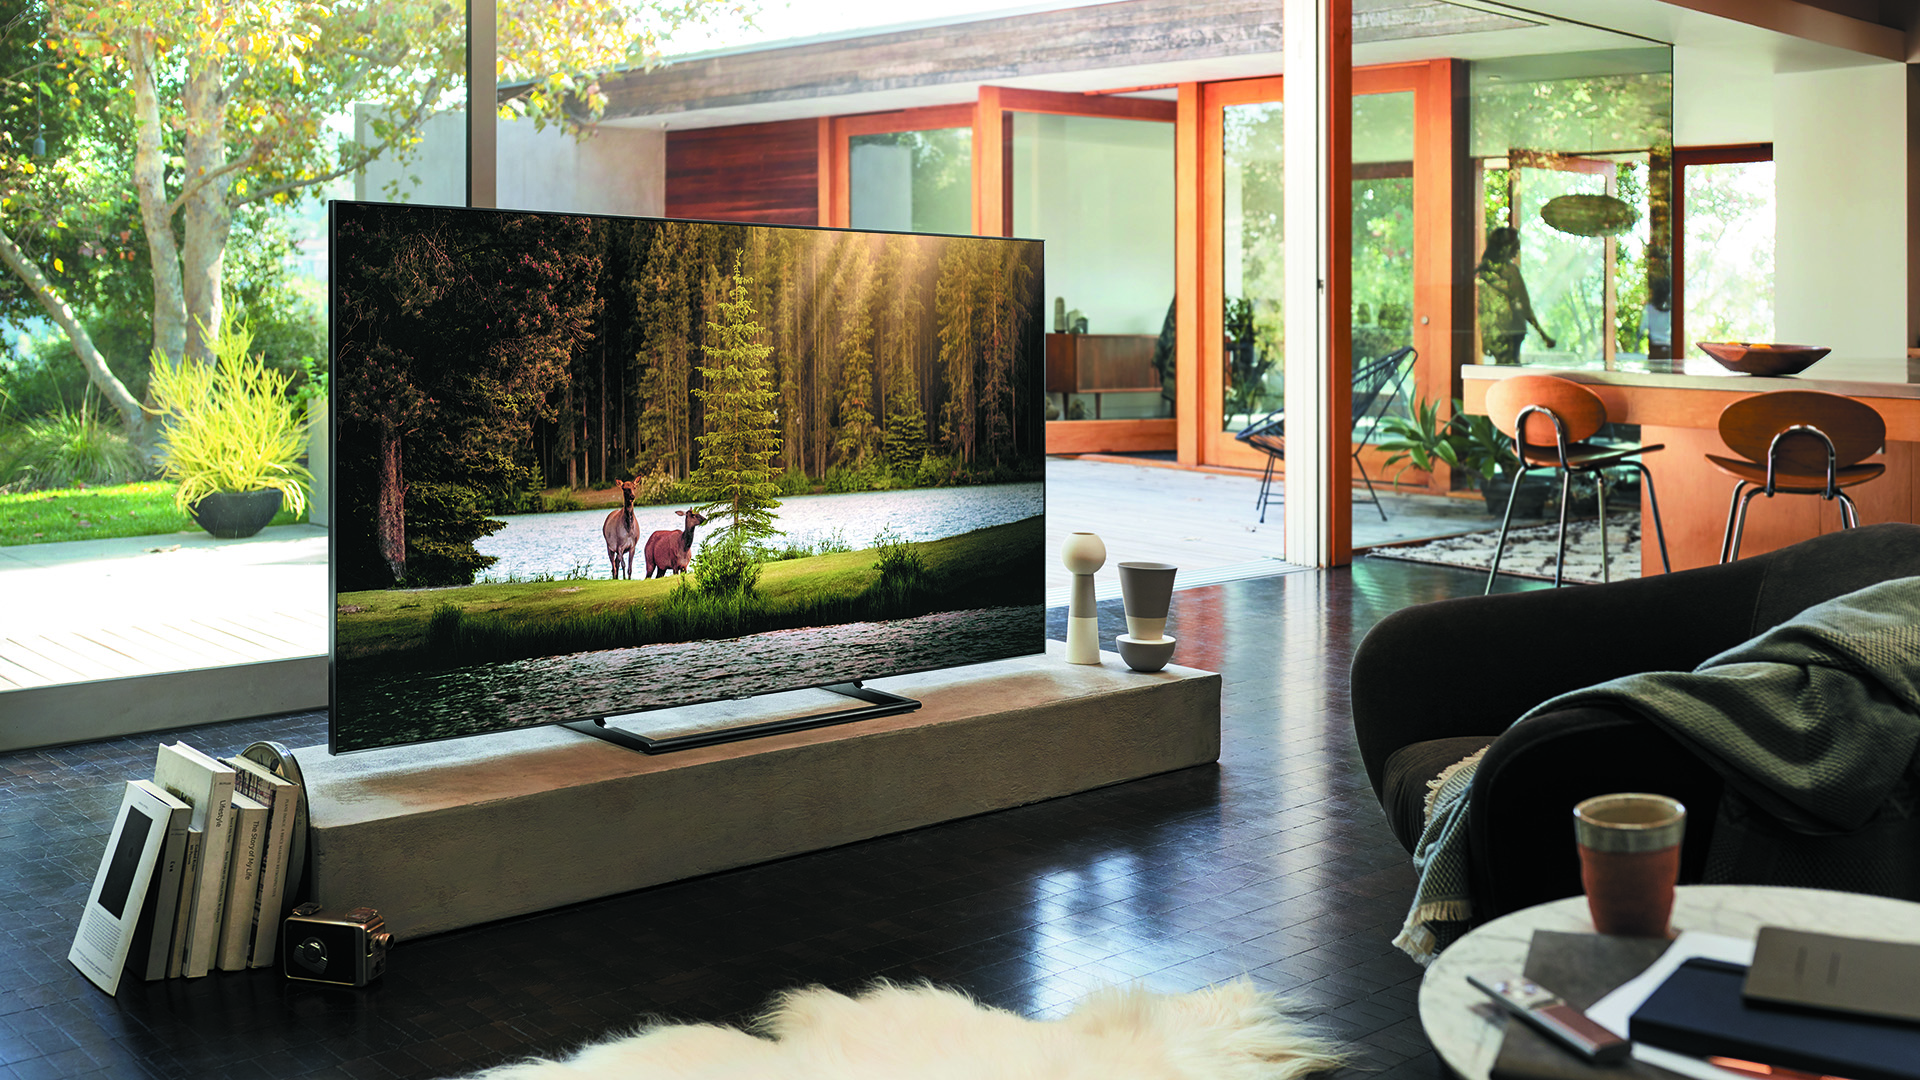 Samsung Q9fn Qled Tv 65q9fn Review Techradar Home Gt Structured Wiring Channel Vision Panels And